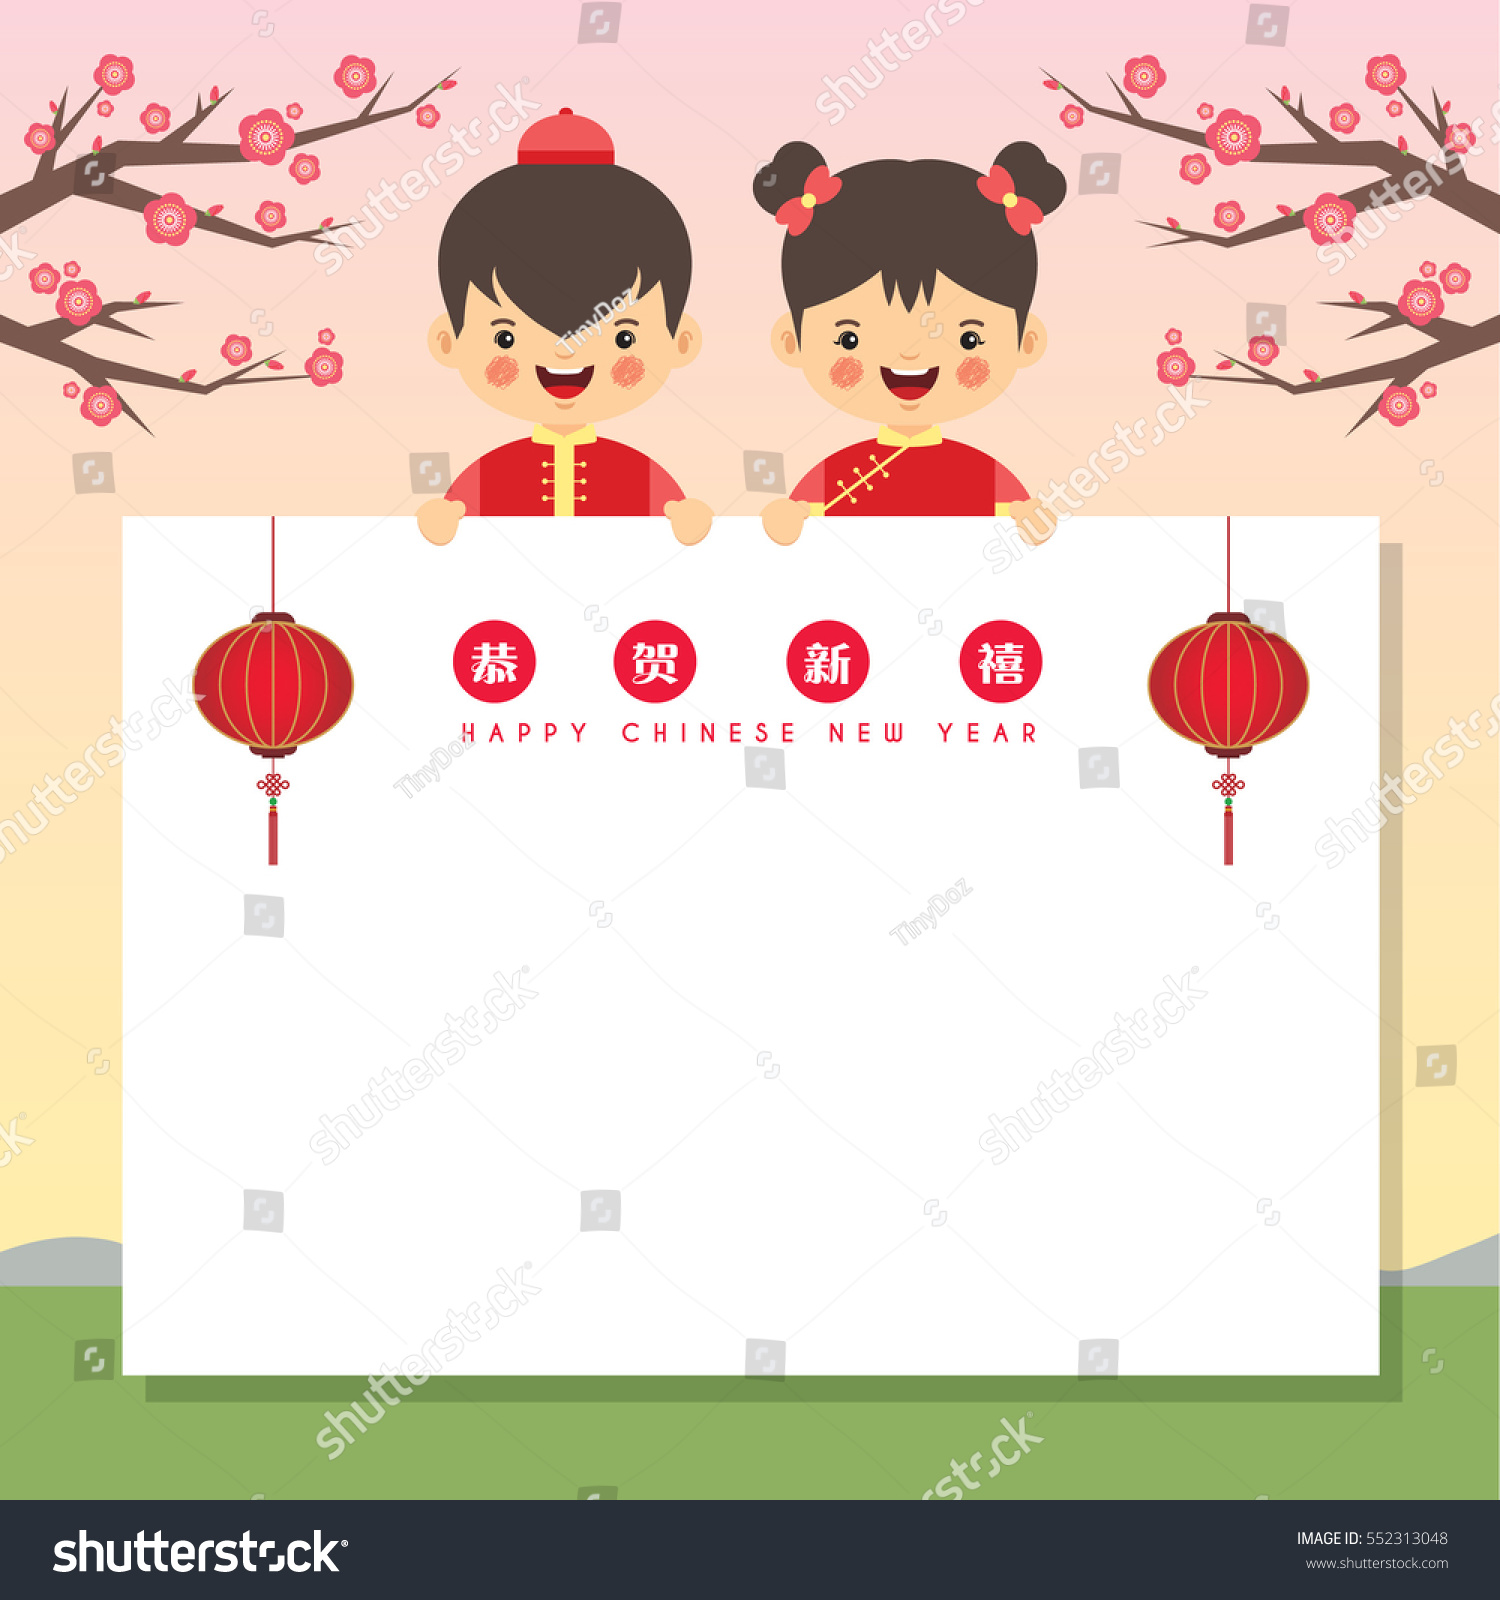 Chinese New Year Greetings Lanterns Chinese Stock Vector Royalty